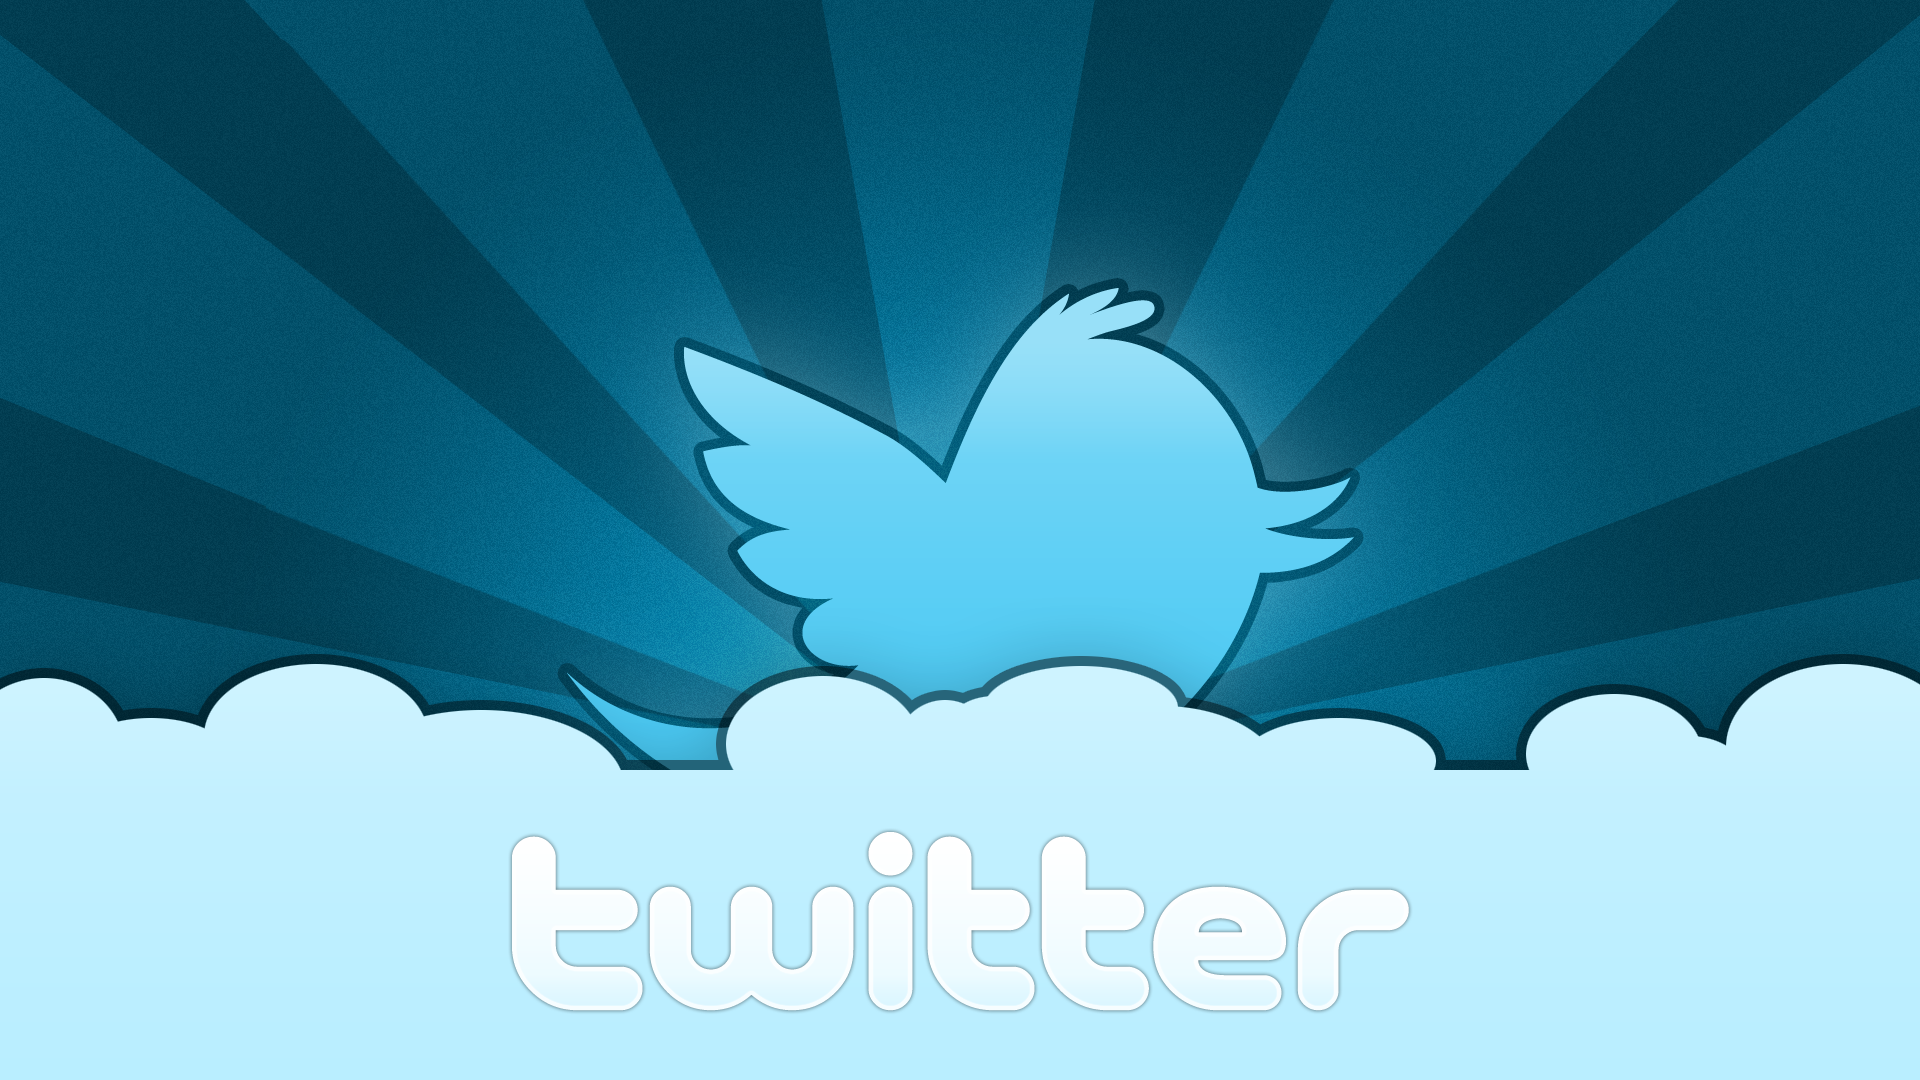 Twitter Logo Wallpapers Pictures Images